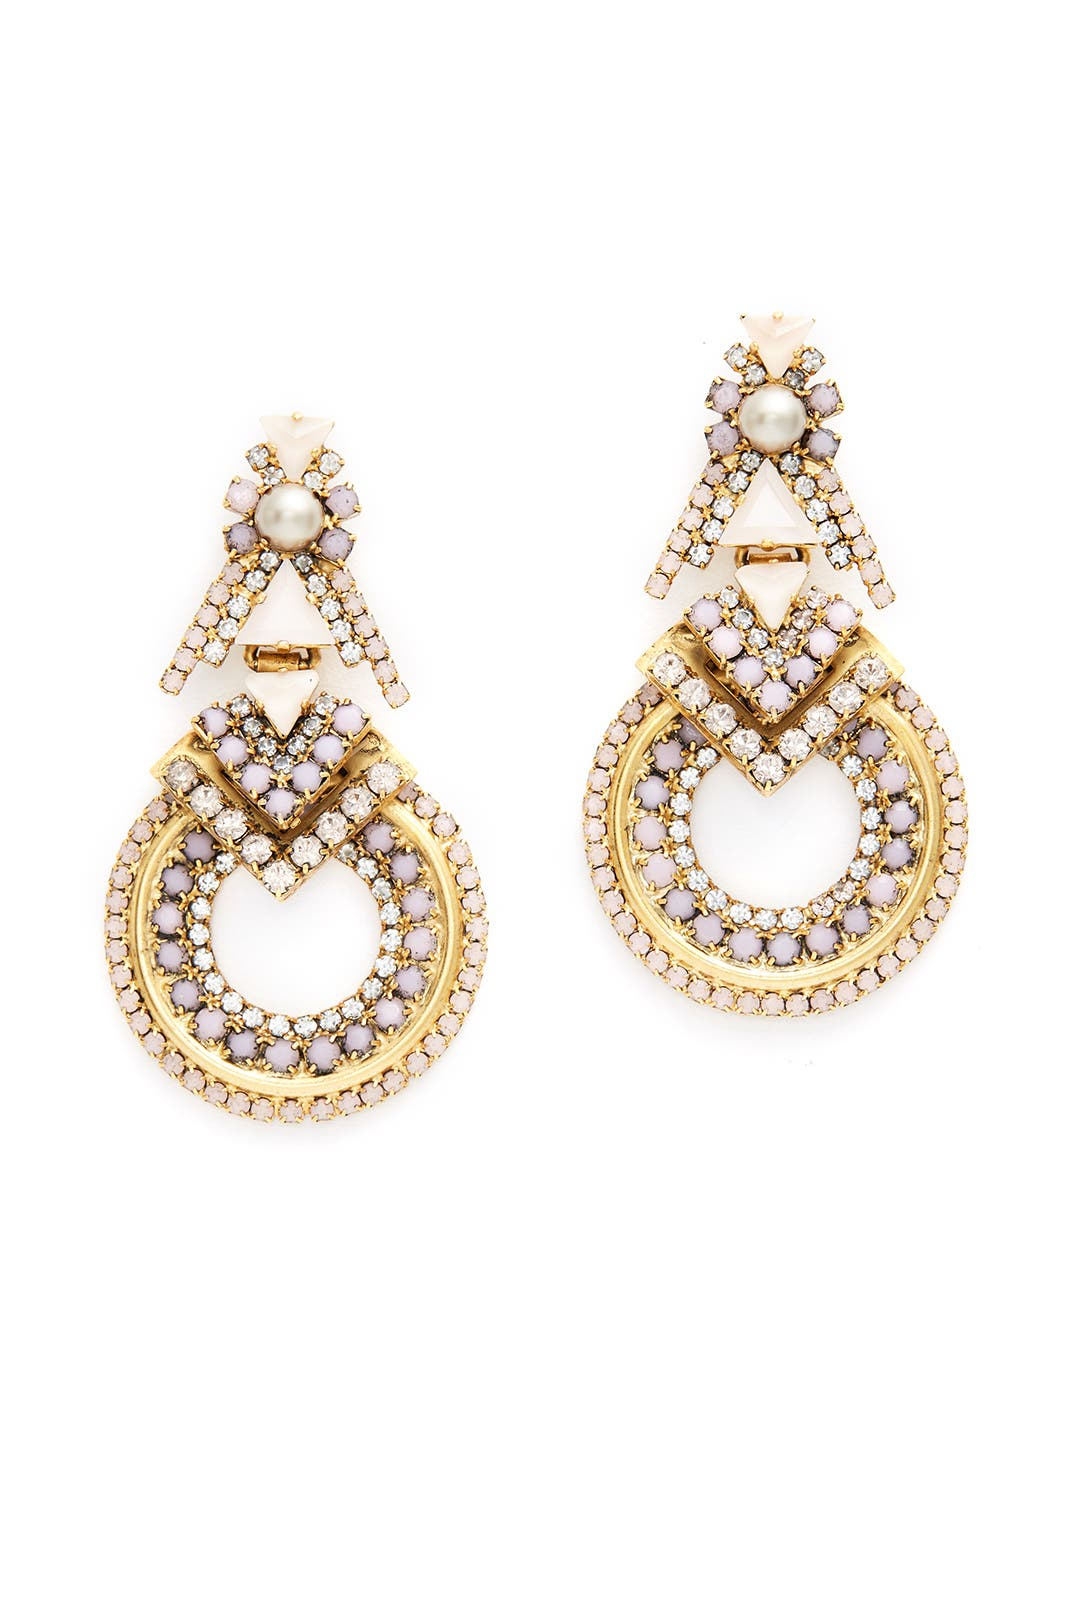 Blush Pave Stone Hoop Earrings By Elizabeth Cole For $45  Rent The Runway